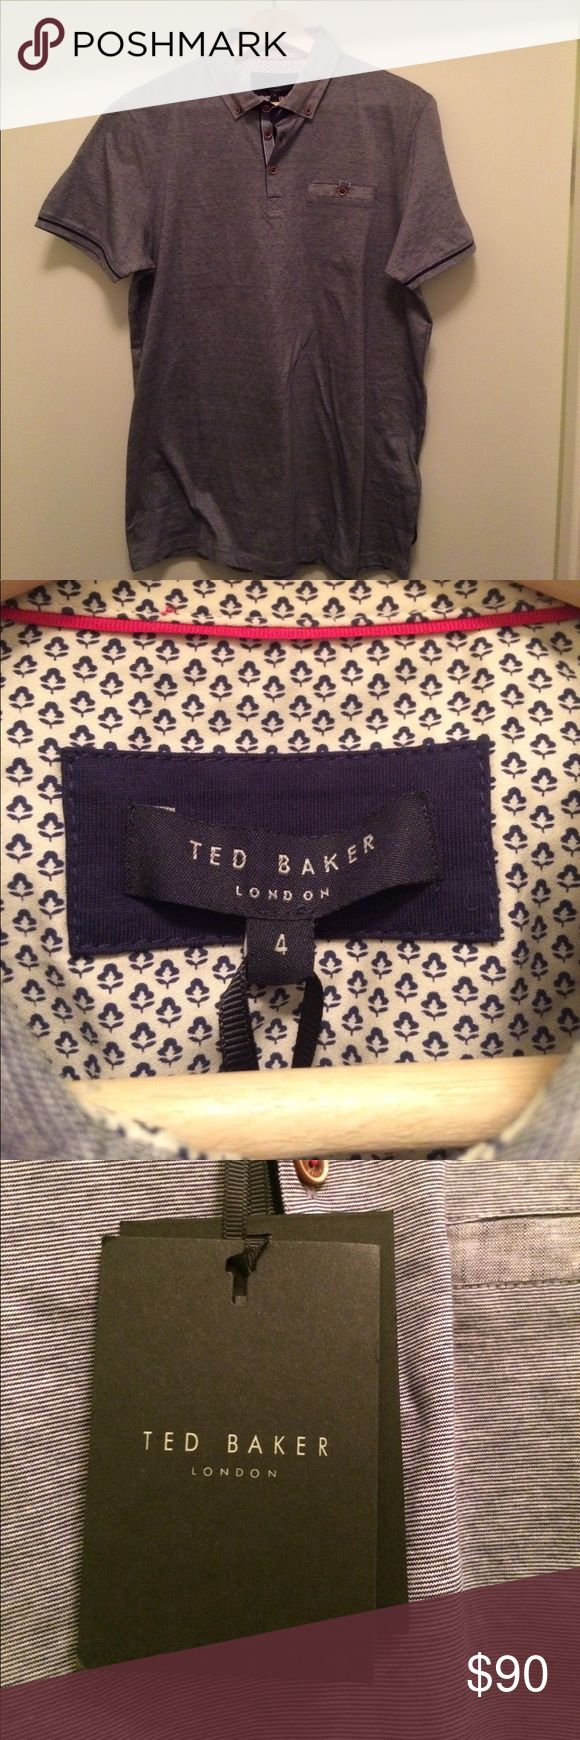 Brand new AUTHENTIC Ted Baker short sleeve polo. NWT AUTHENTIC Ted Baker short sleeve polo. Size 4 which is size L. Dark blue color. Bought from Nordstrom for $110. Other sizes available upon inquiry. Ted Baker London Shirts Polos